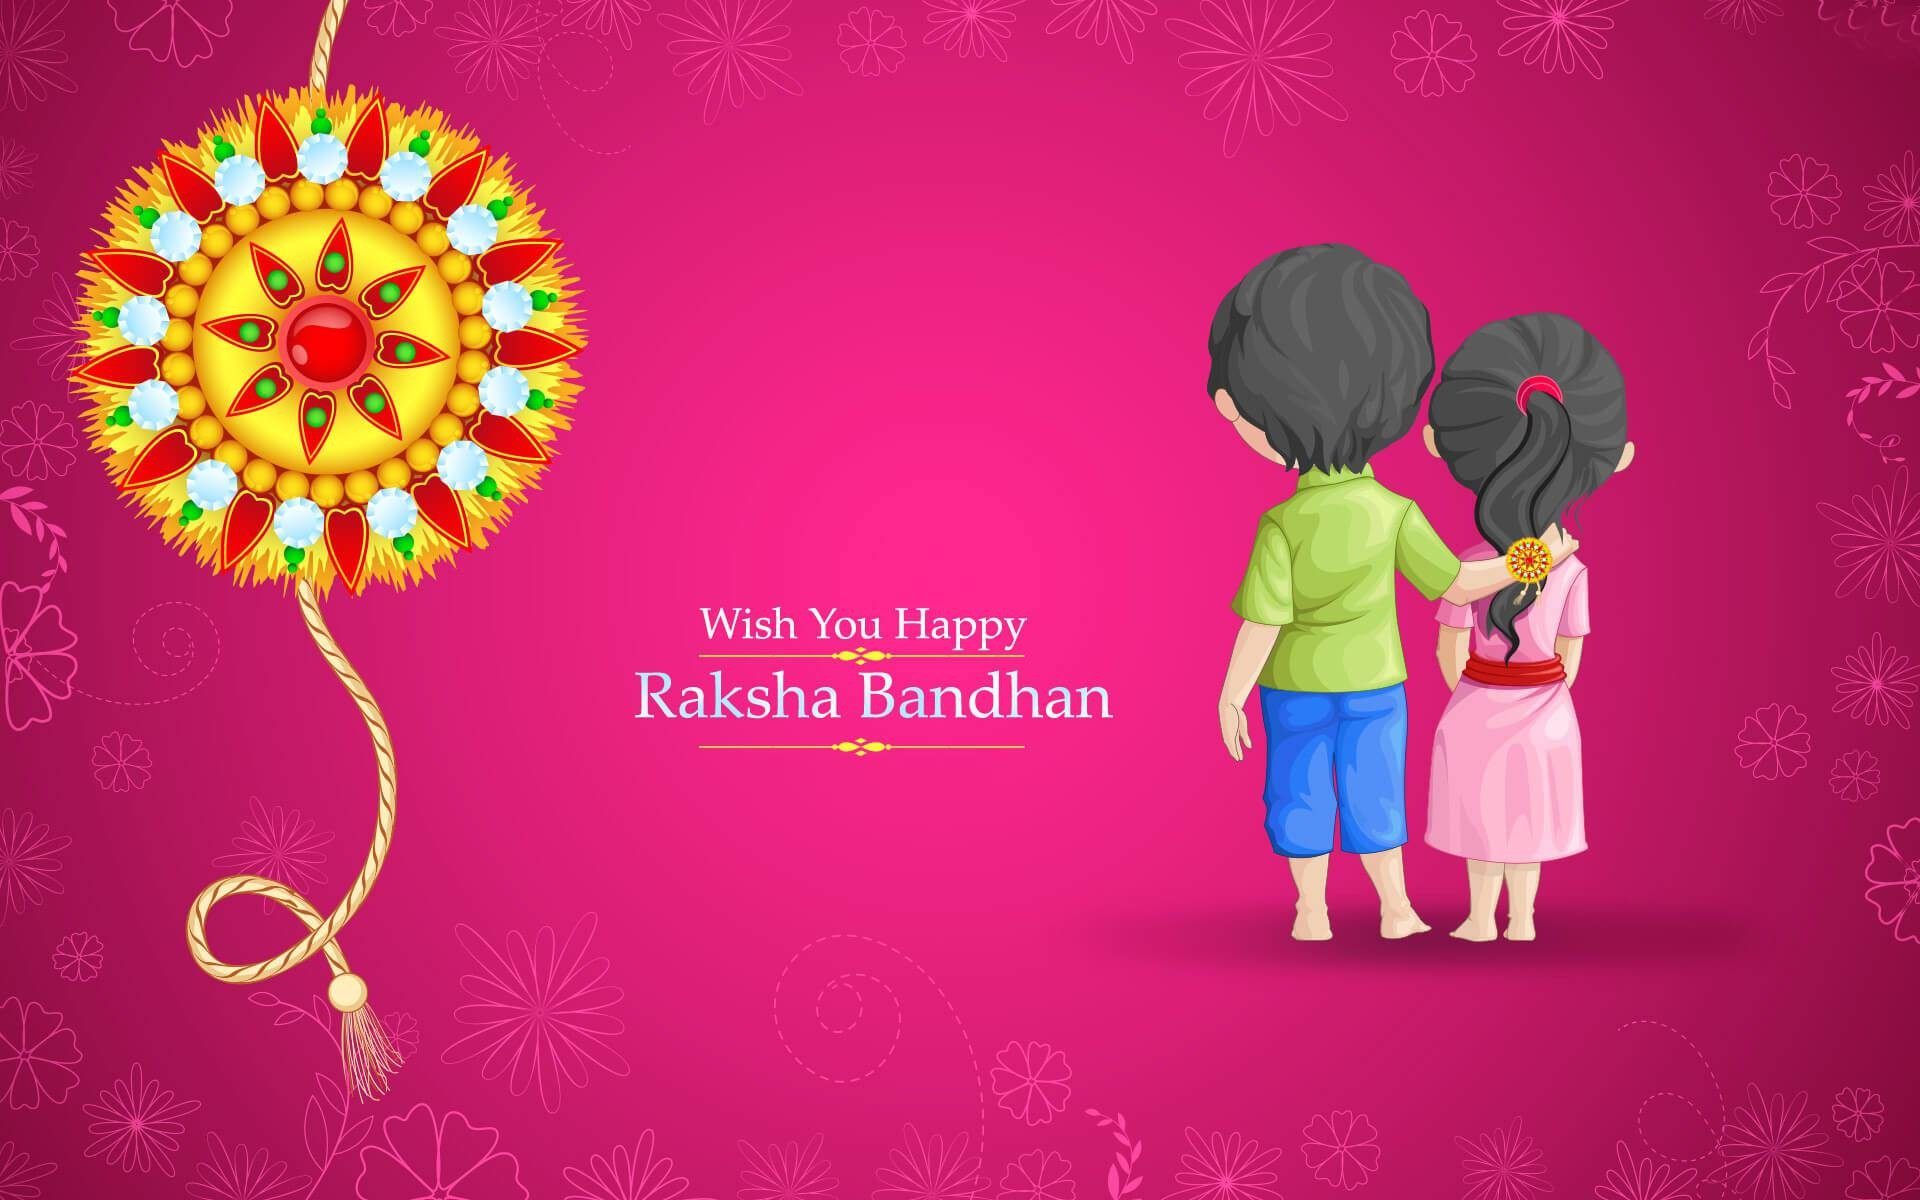 Wish you happy Raksha Bandhan